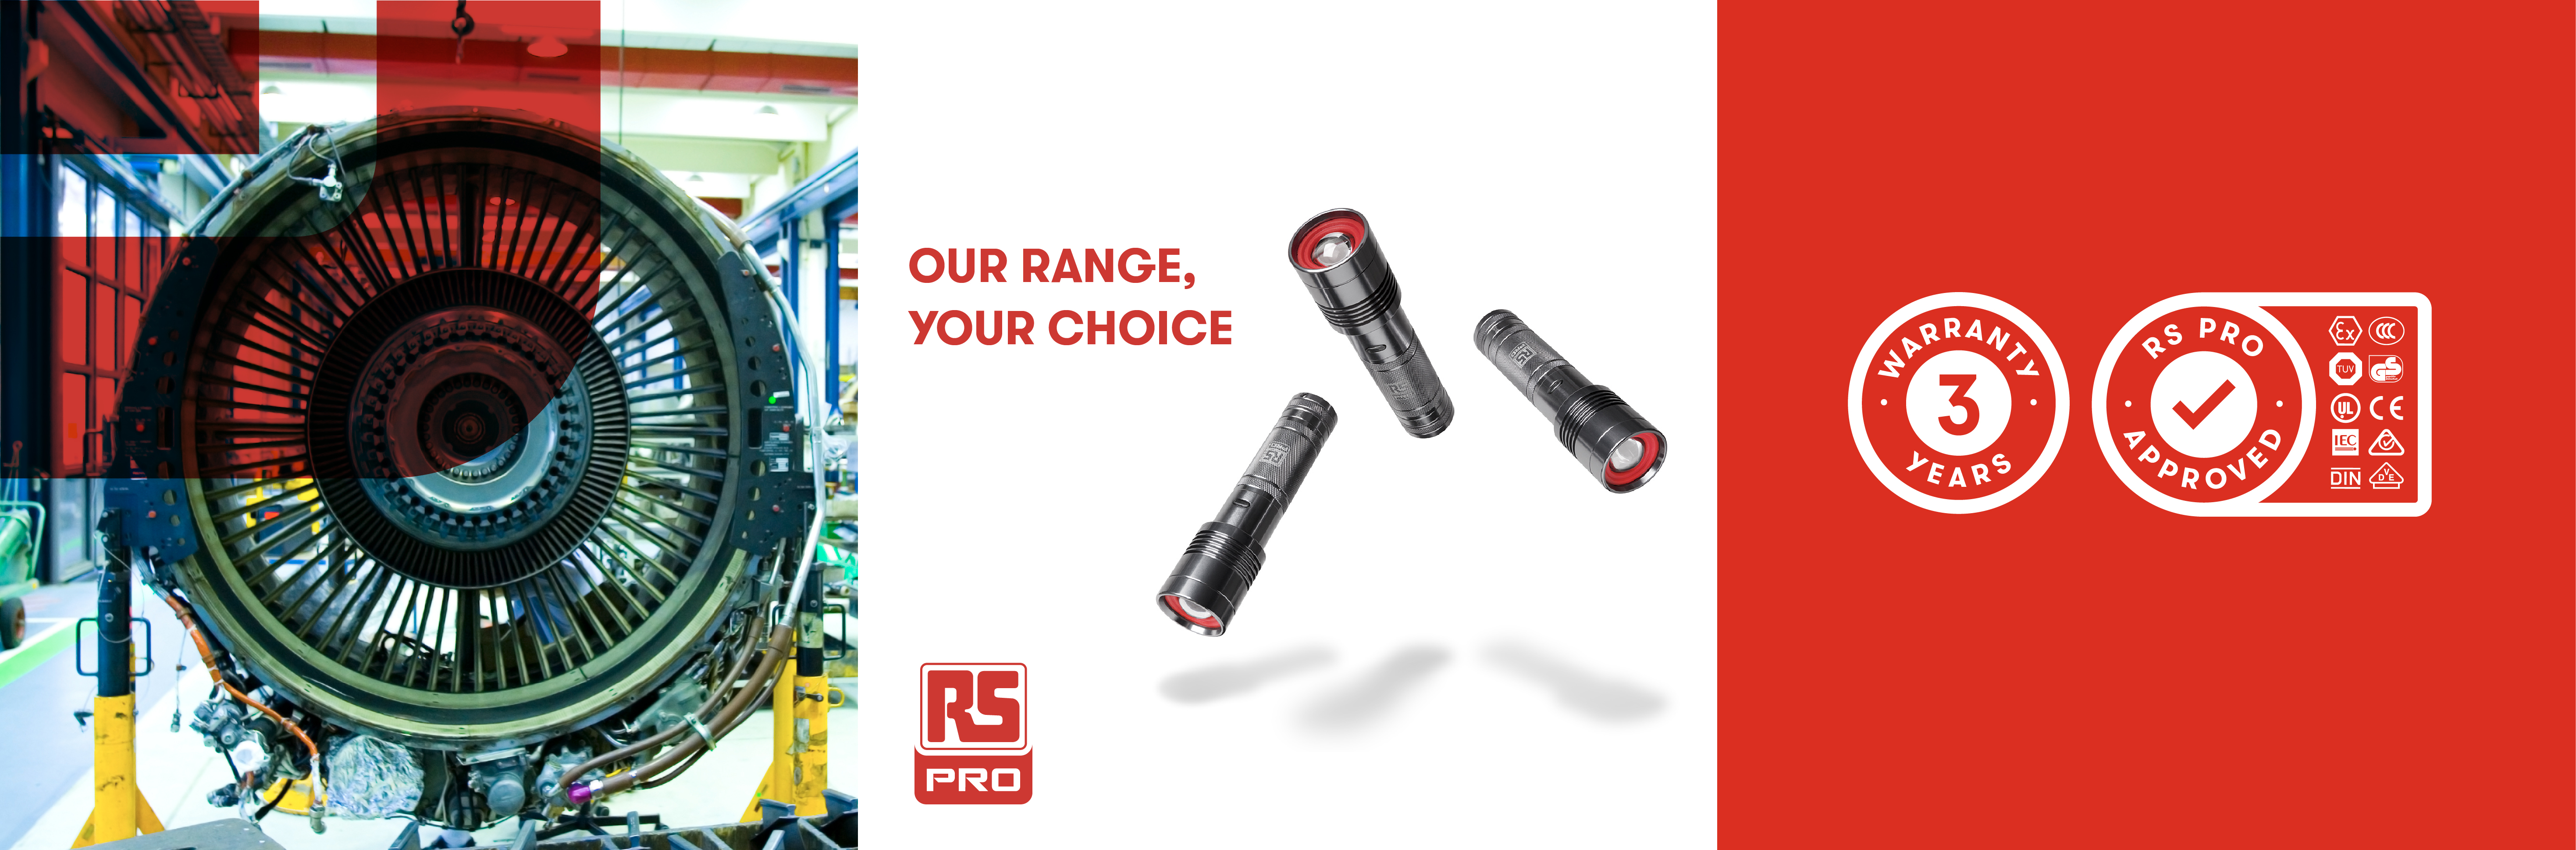 RS PRO. Our Range Your Choice.